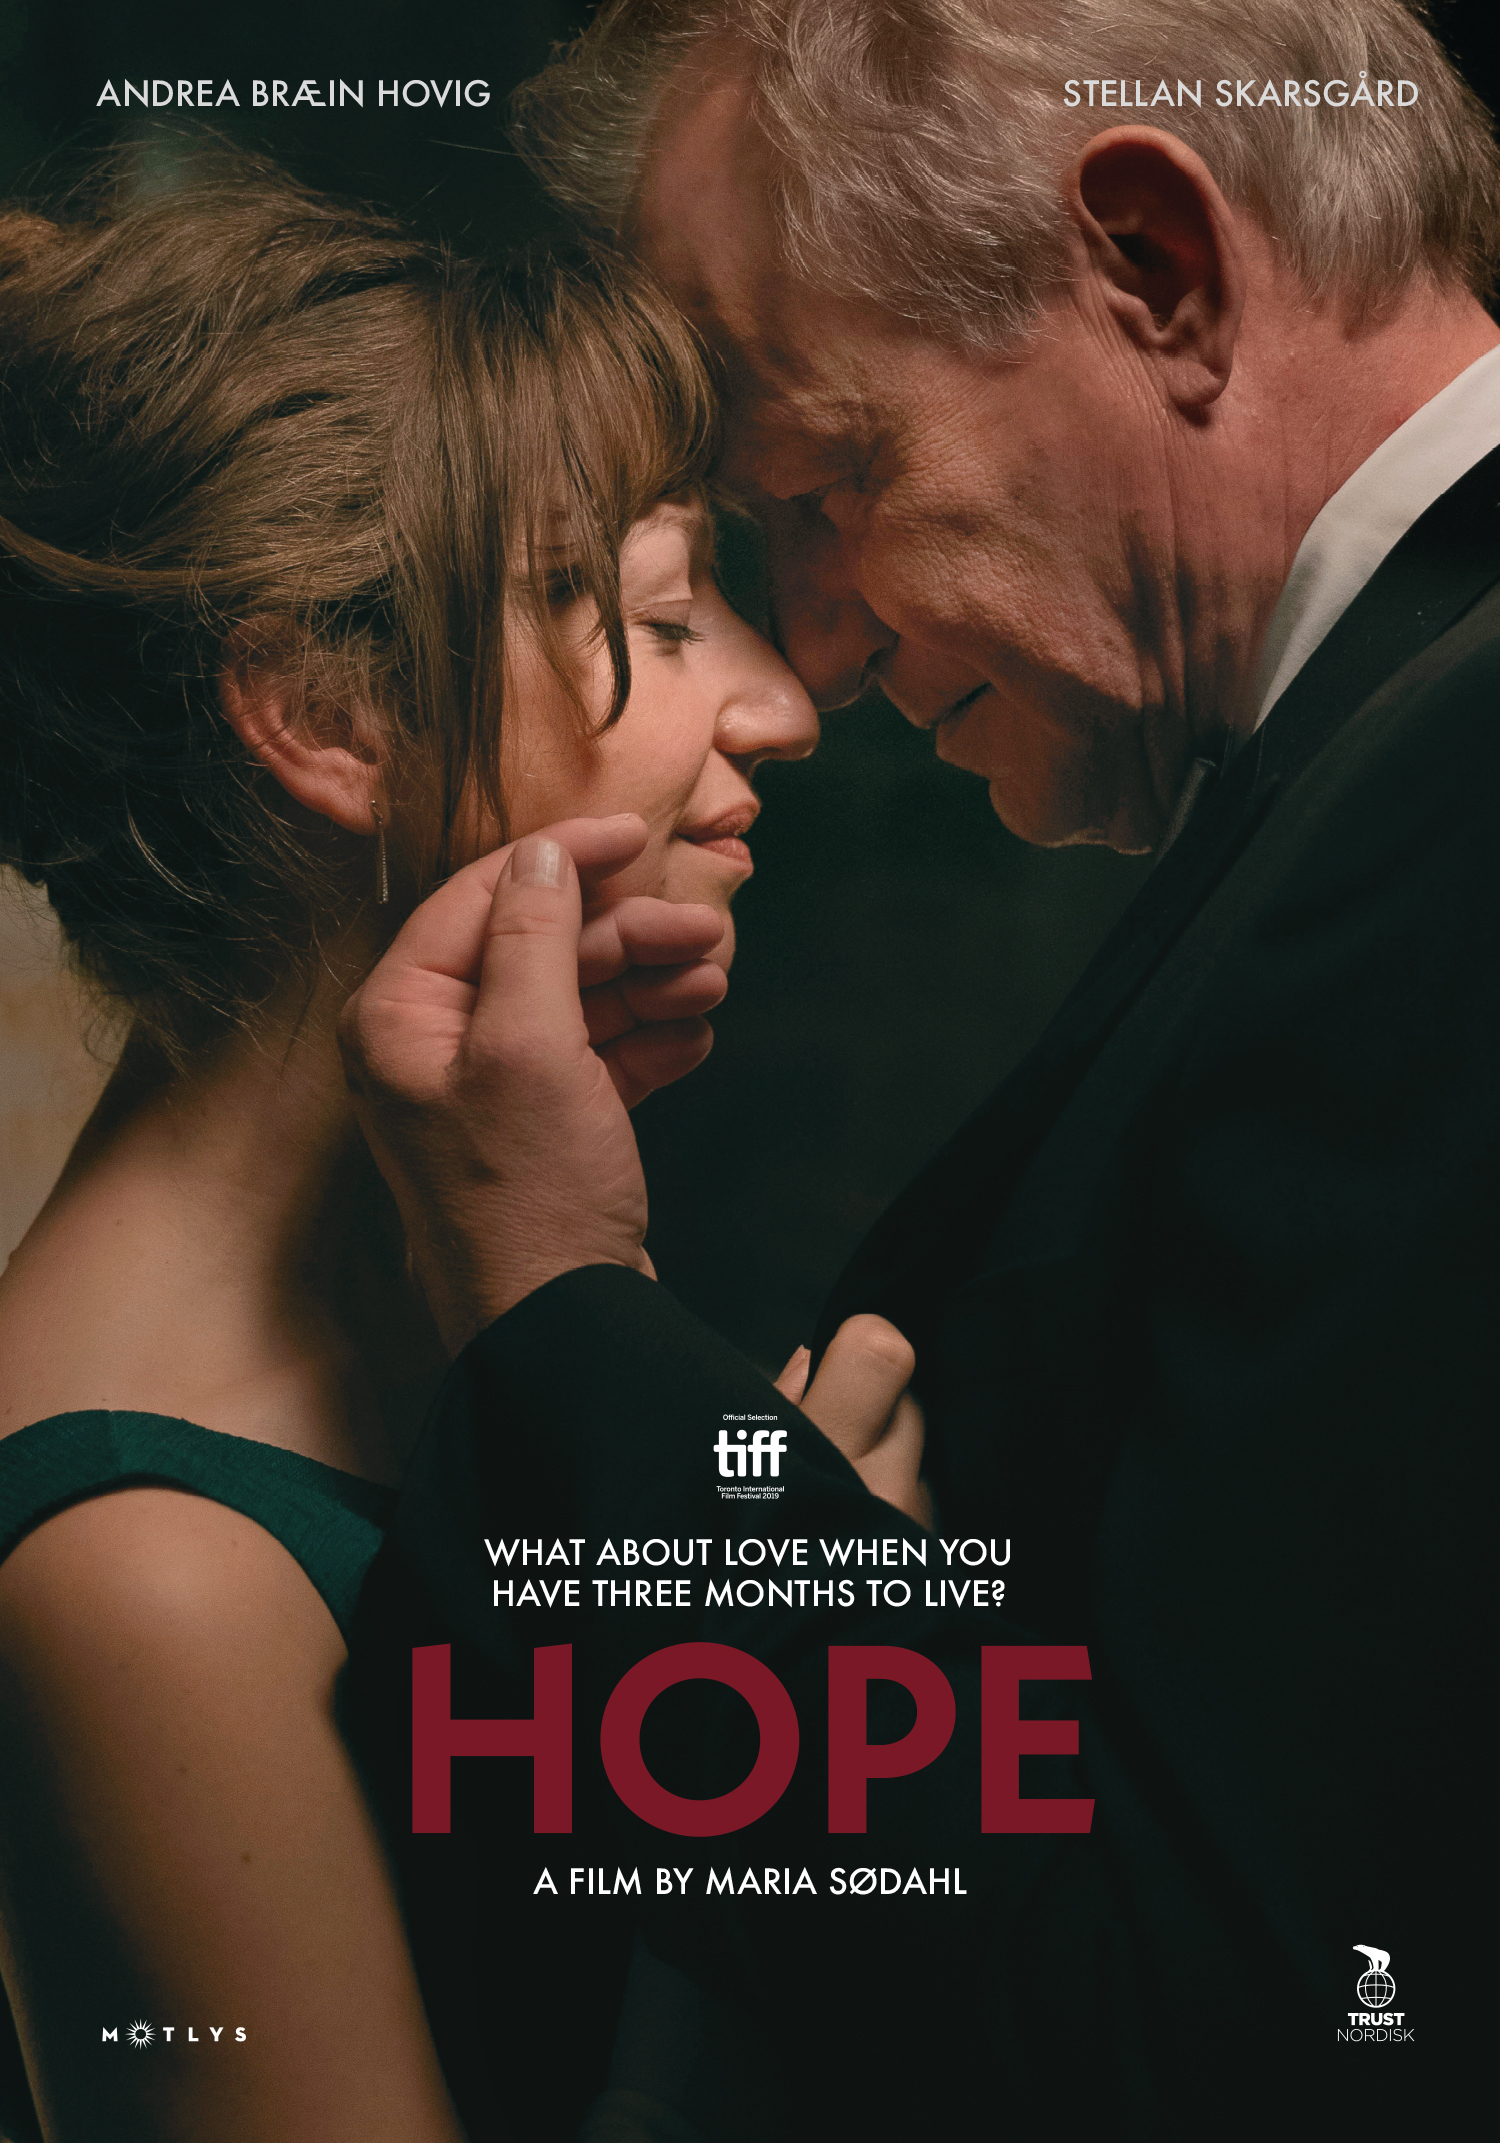 Image result for hope movie poster norway